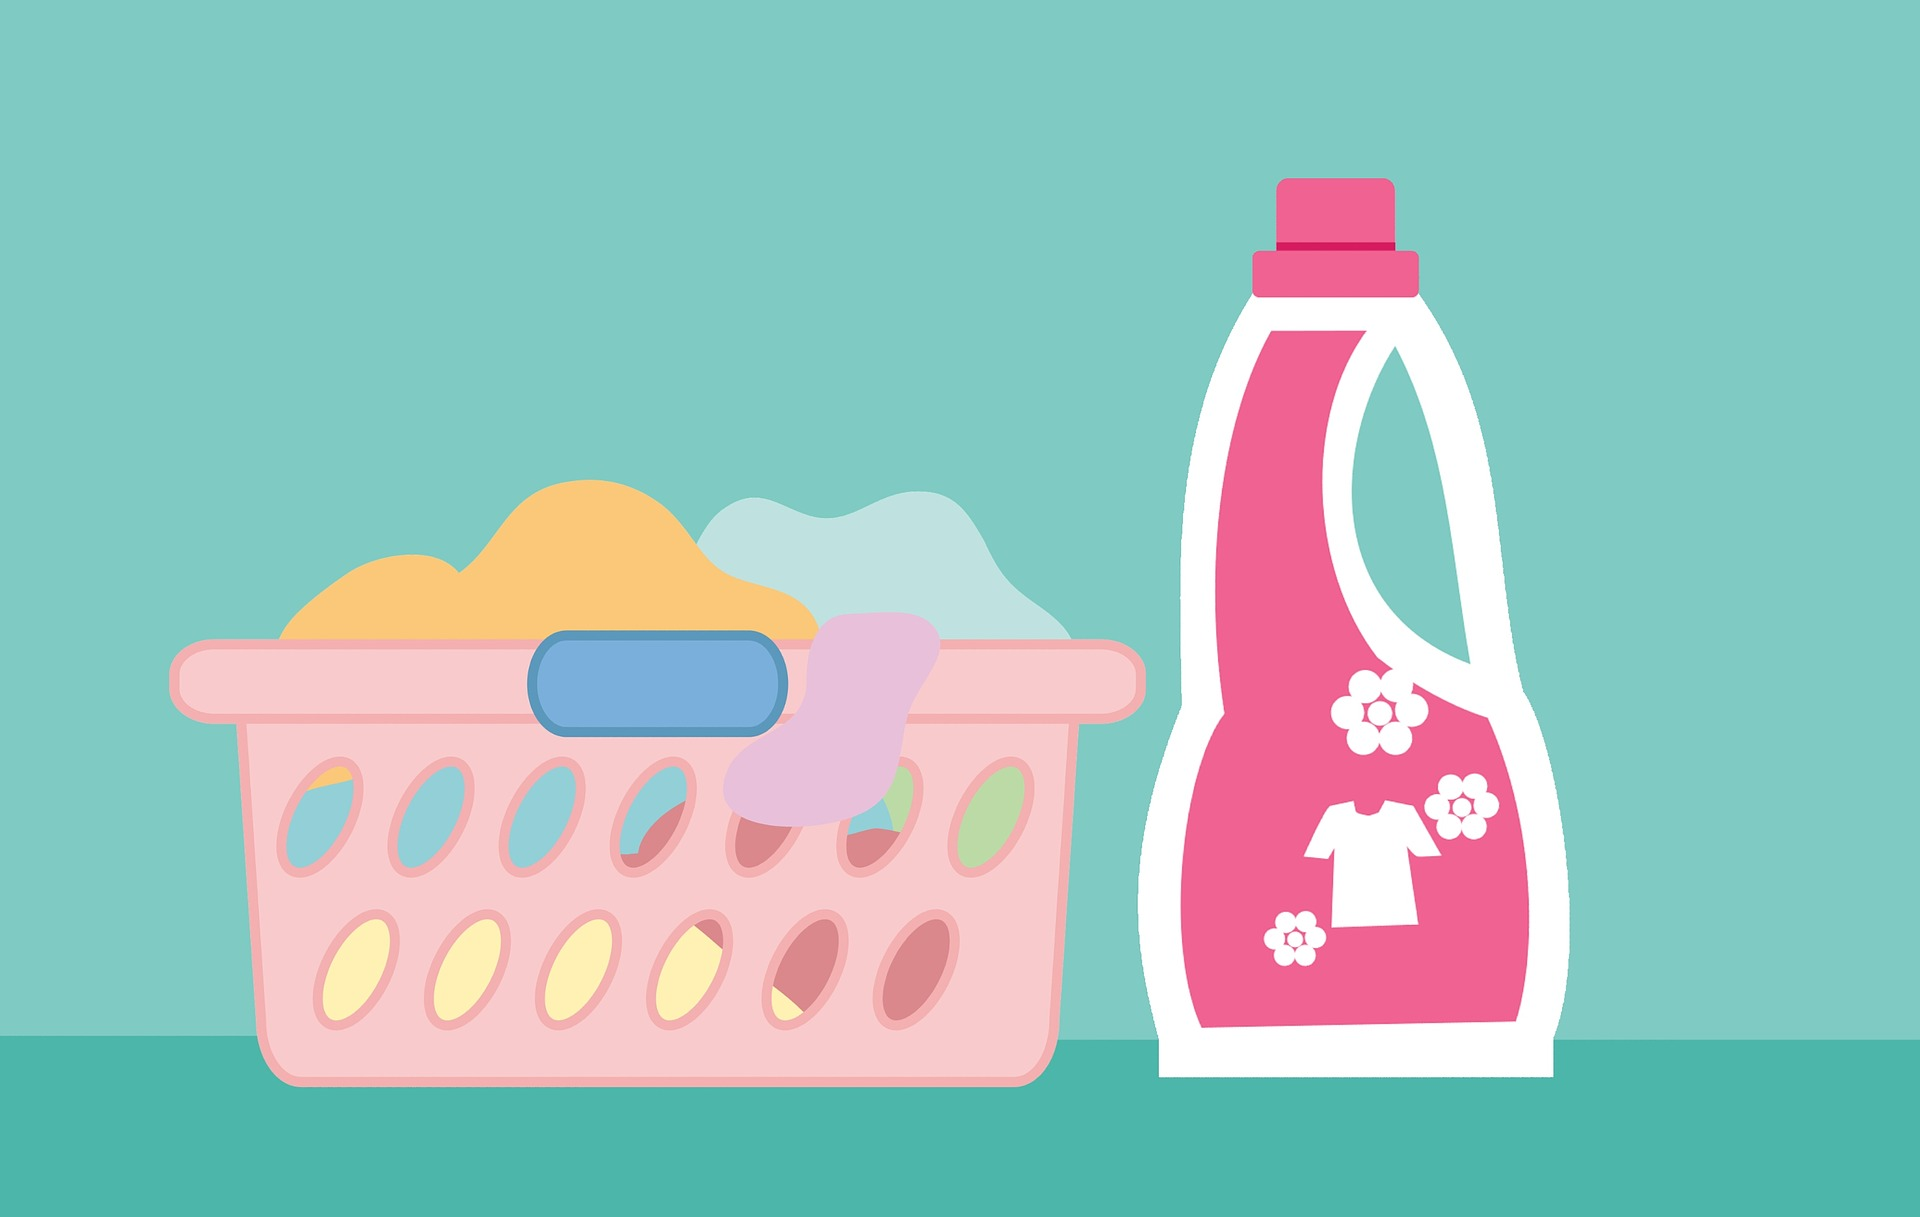 Laundry detergents are undoubtedly most vital tools in washing dirty clothes.